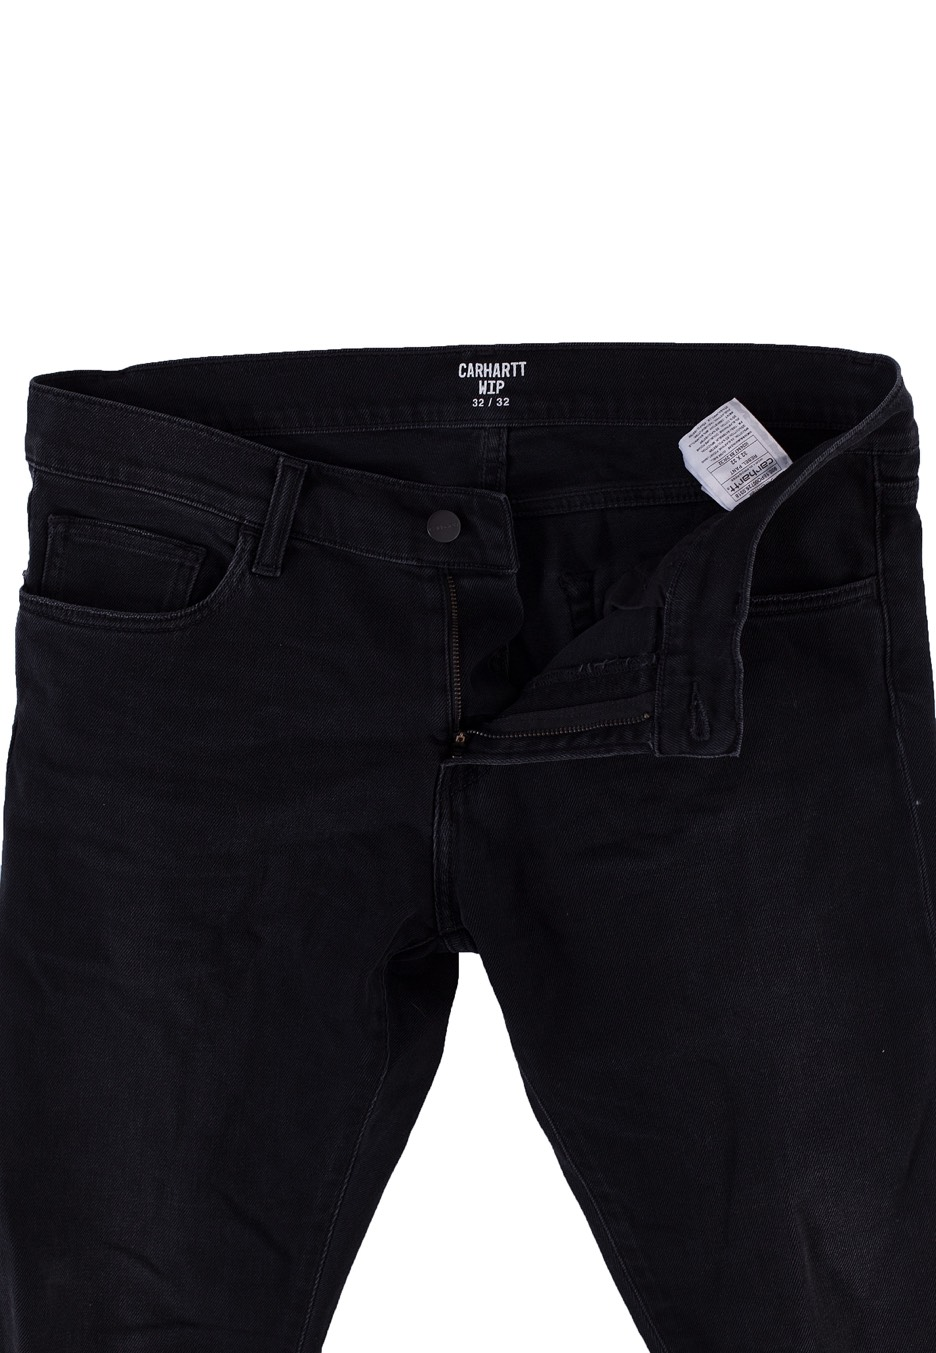 carhartt wip - rebel margate black stone coast - jeans - boutique